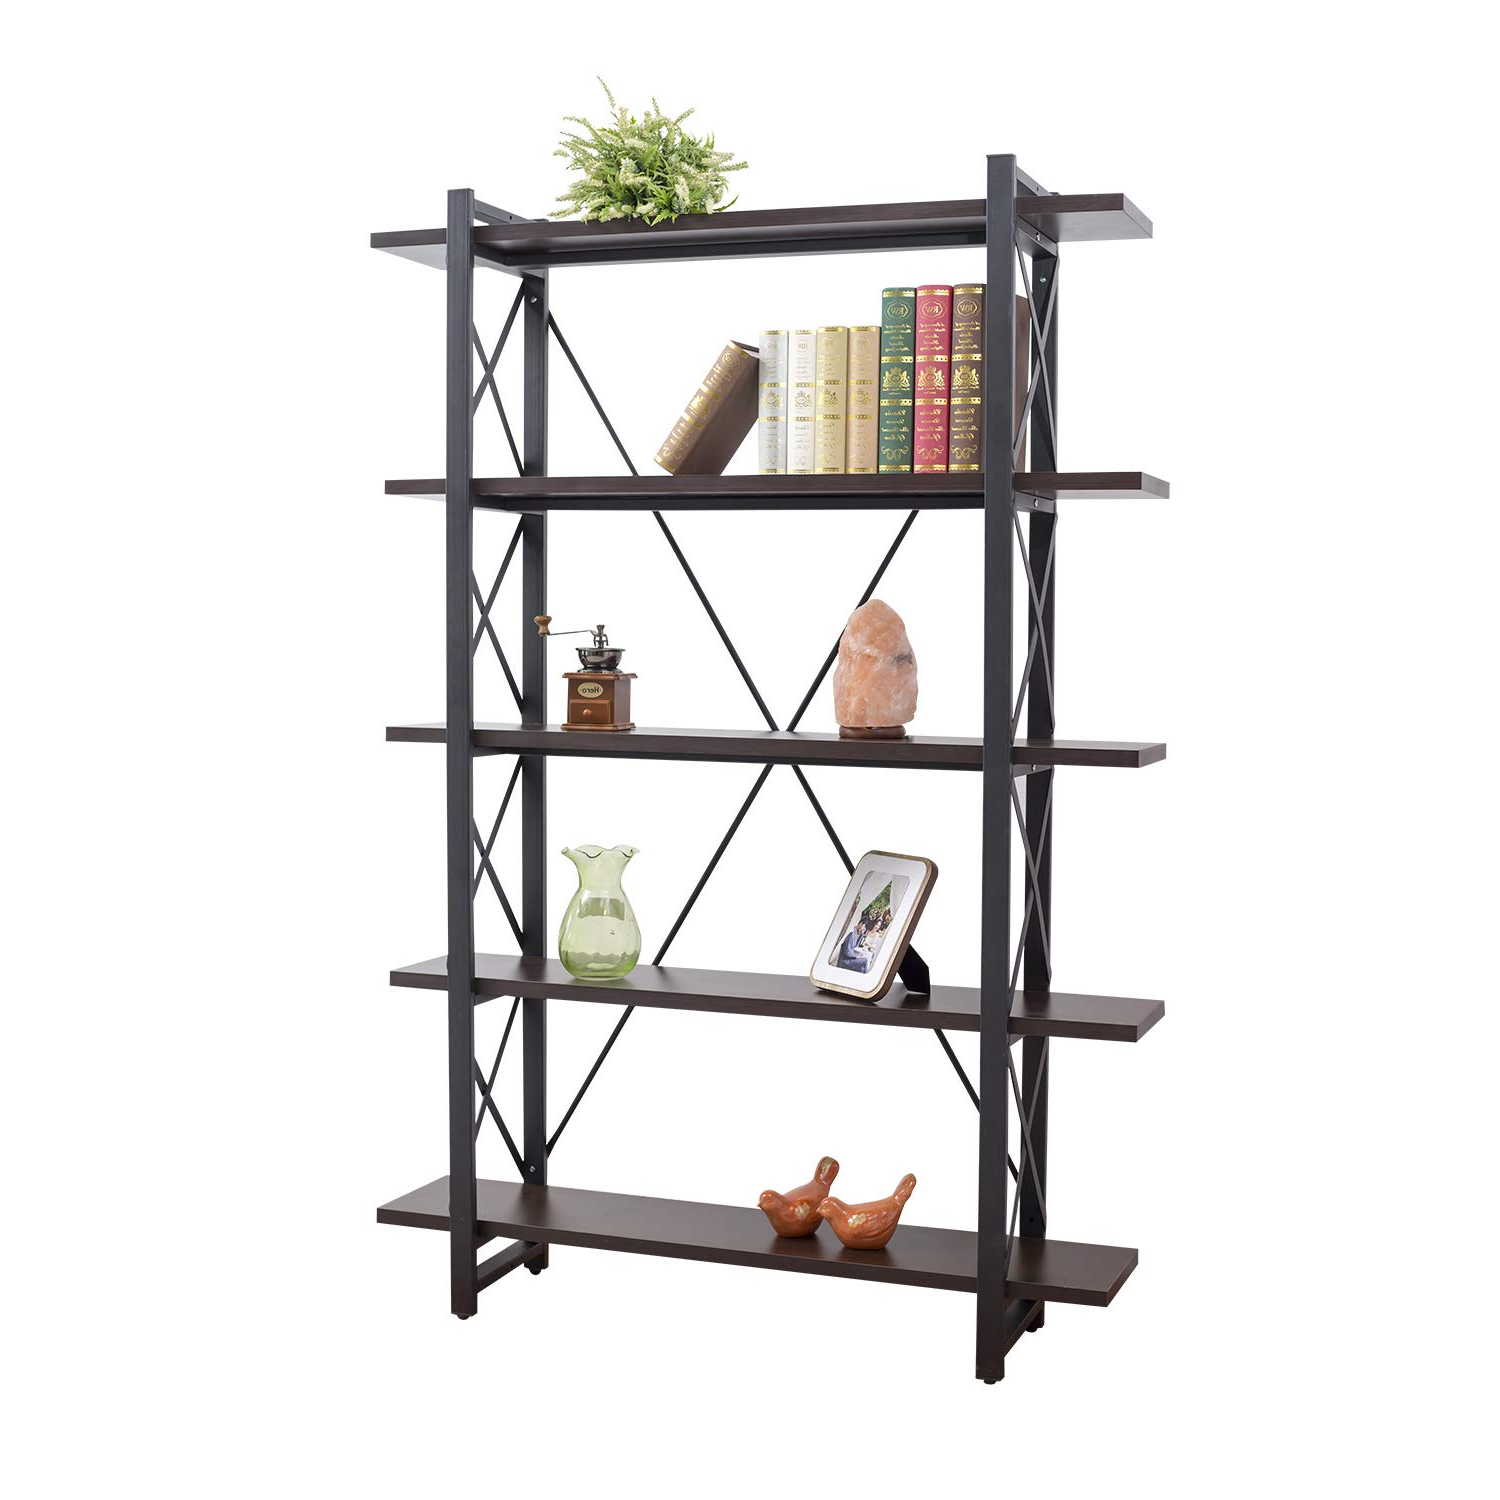 Grace Tech 5 Tier Industrial Bookshelf Etagere Bookcase Wood And Metal Book Shelves Furniture, Retro Rustic Home Office Storage Rack, 5 Shelf Inside Most Recent Whidden Etagere Bookcases (View 4 of 20)